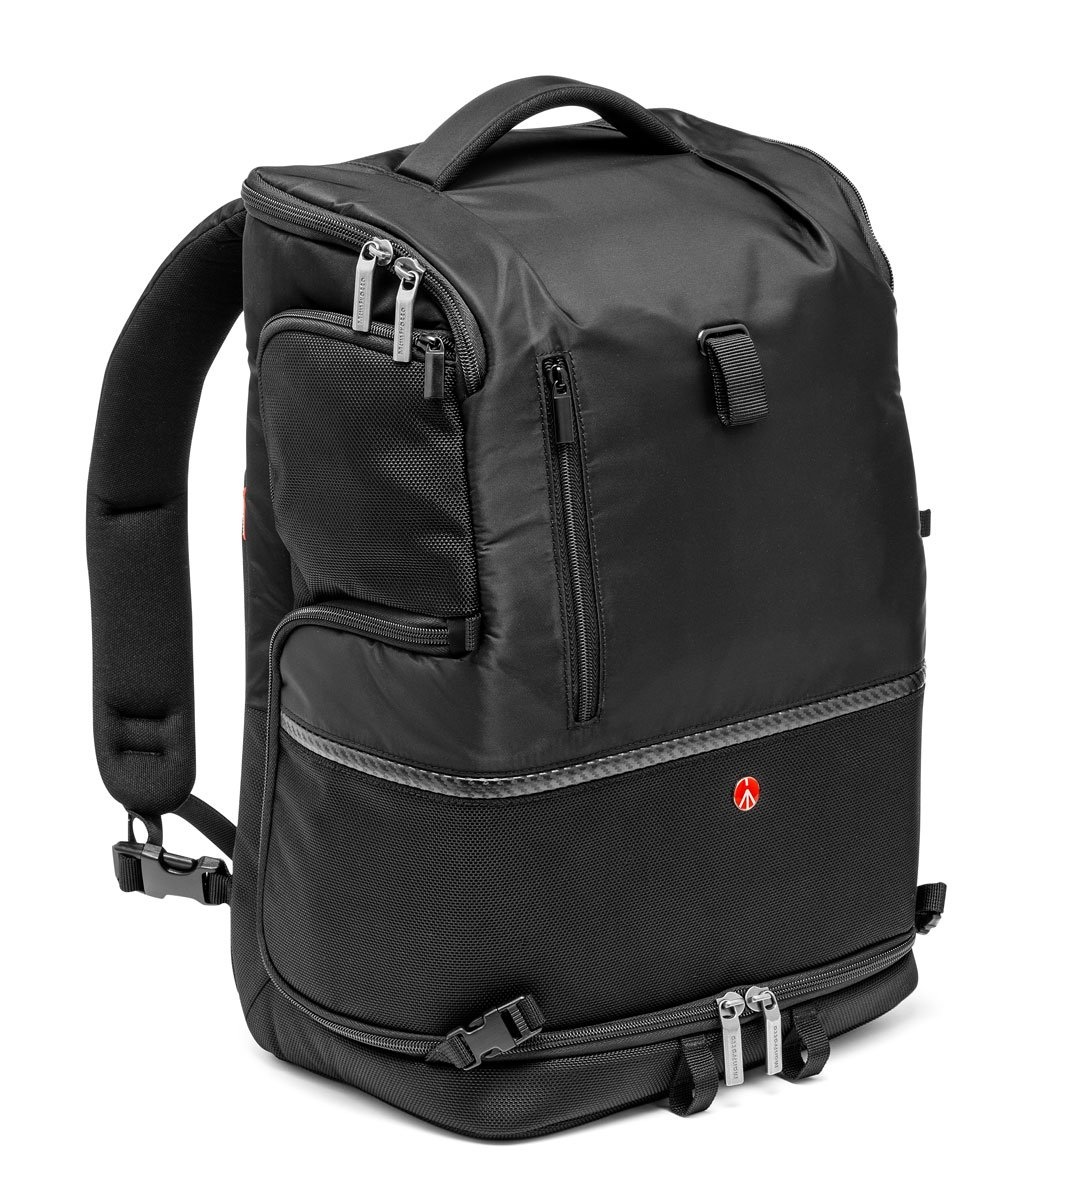 b246fe923aa1 Manfrotto Advanced Camera and Laptop Backpack Tri L for  Amazon.co.uk   Camera   Photo